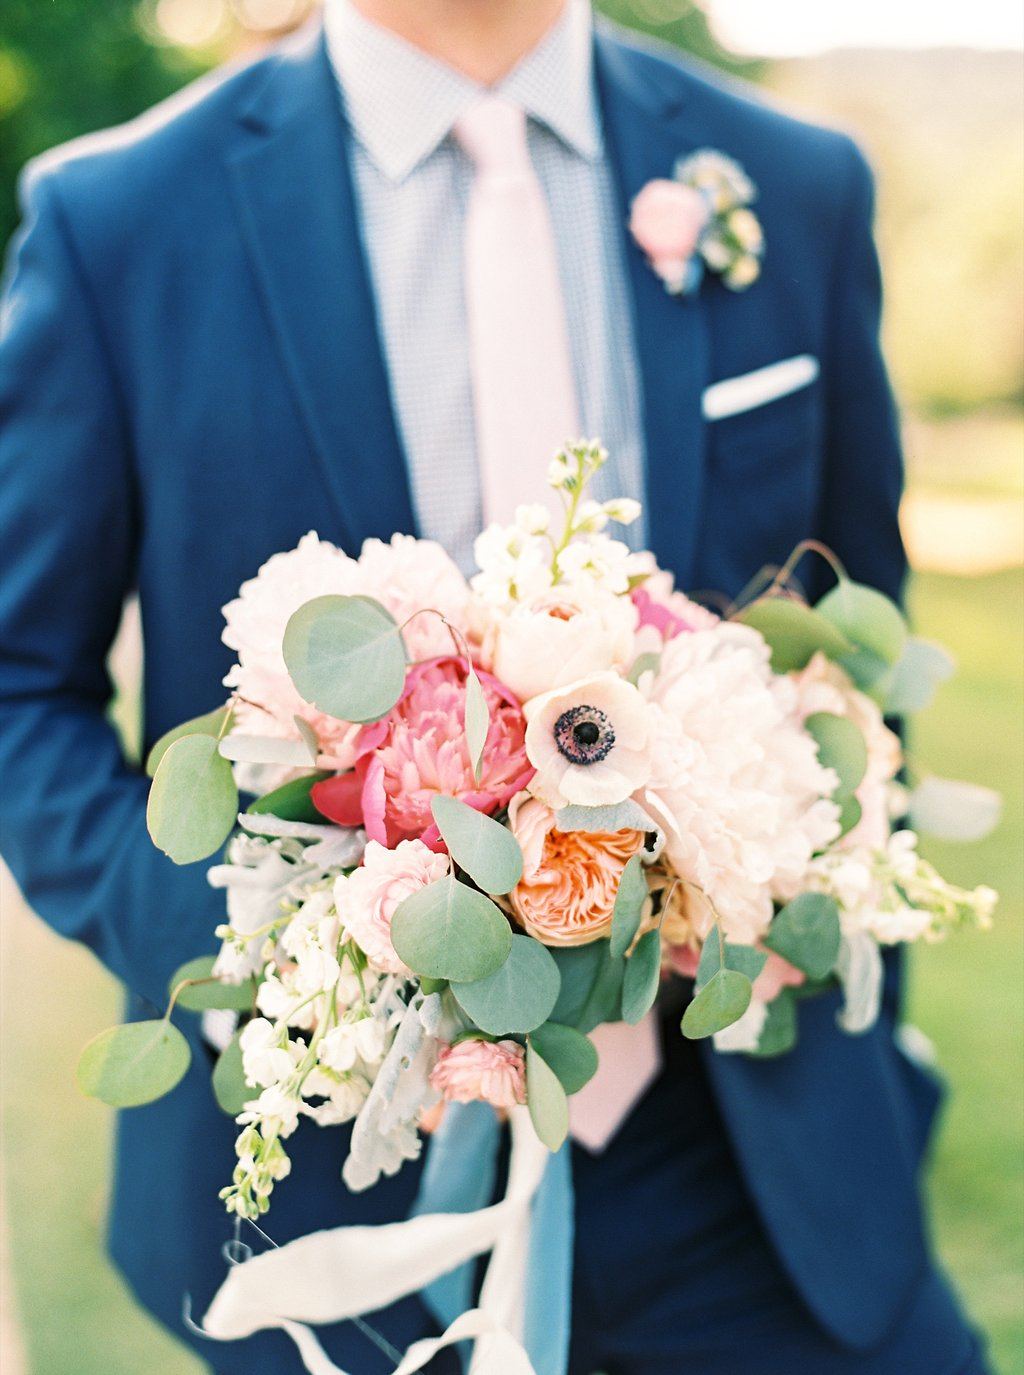 Groom Holding Blush and Fuchsia Poeny Bridal Bouquet with Peach Juliet Garden Roses and Silver Dollar Eucalyptus | Blush and Navy Wedding with Fuchsia, French Blue and Gold Accents | Simply Jessica Marie's Southern Wedding at Gettysvue Golf Course and Country Club in Knoxville Tennessee | Photo by Perry Vaile Photography